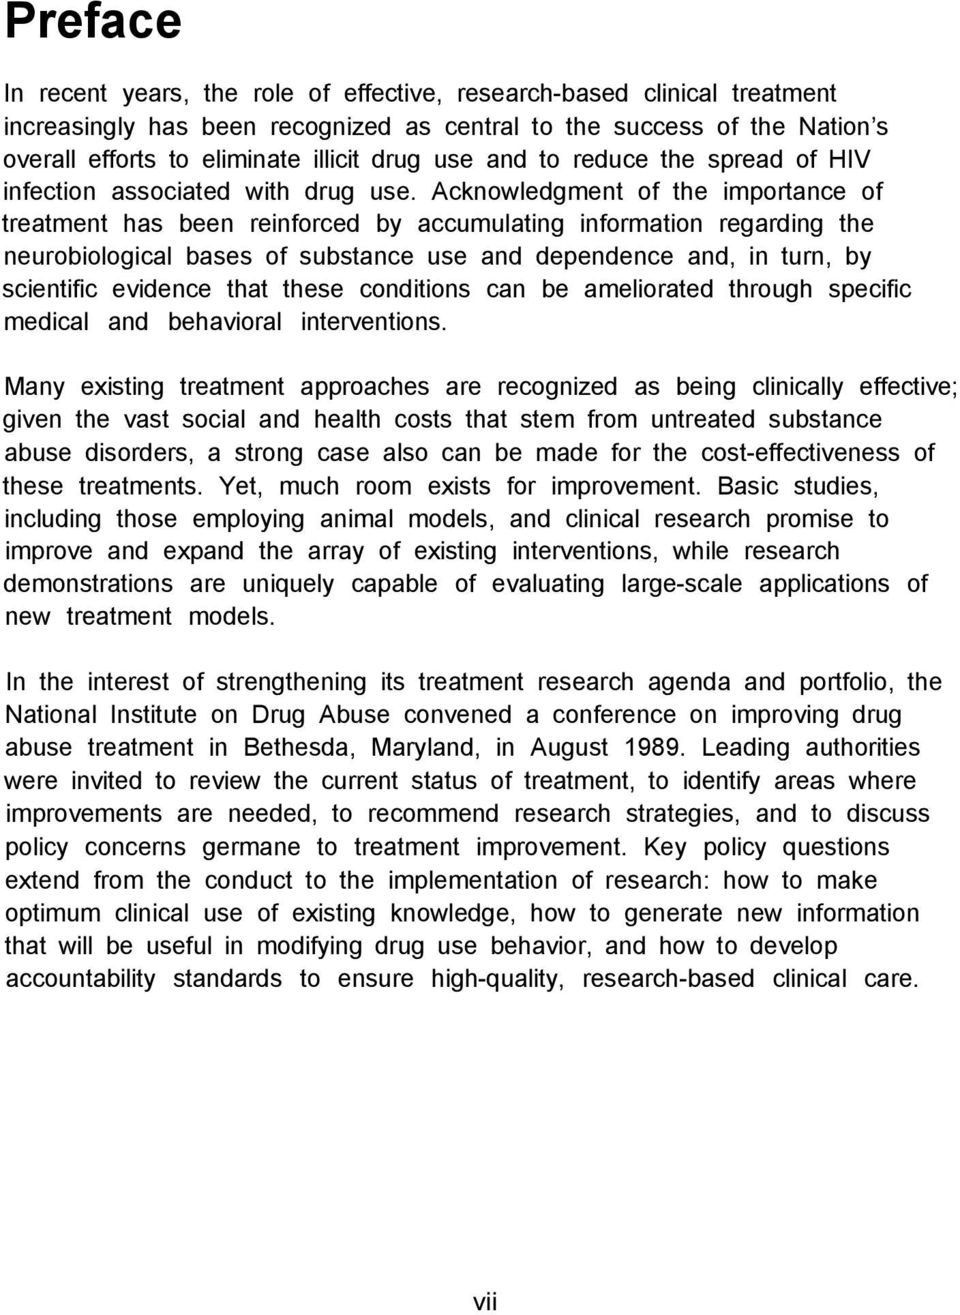 Acknowledgment of the importance of treatment has been reinforced by accumulating information regarding the neurobiological bases of substance use and dependence and, in turn, by scientific evidence